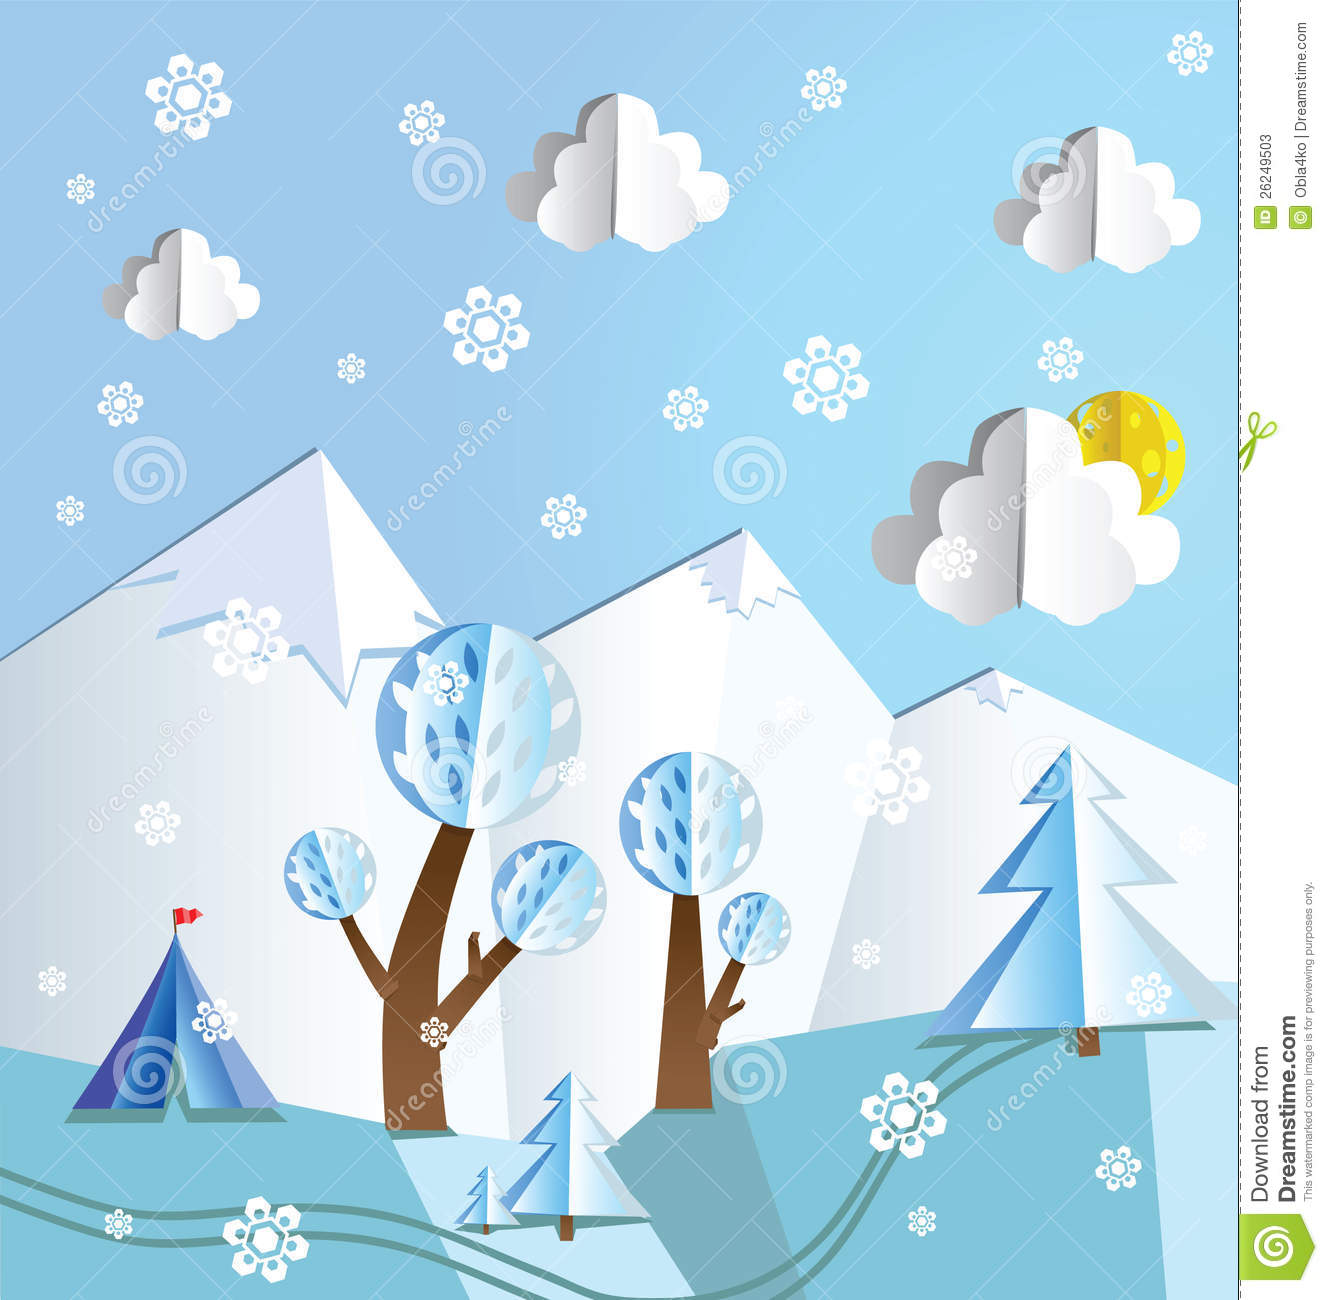 Paper pop up beautiful landscape - snow peaks, trees, snowflakes and ...